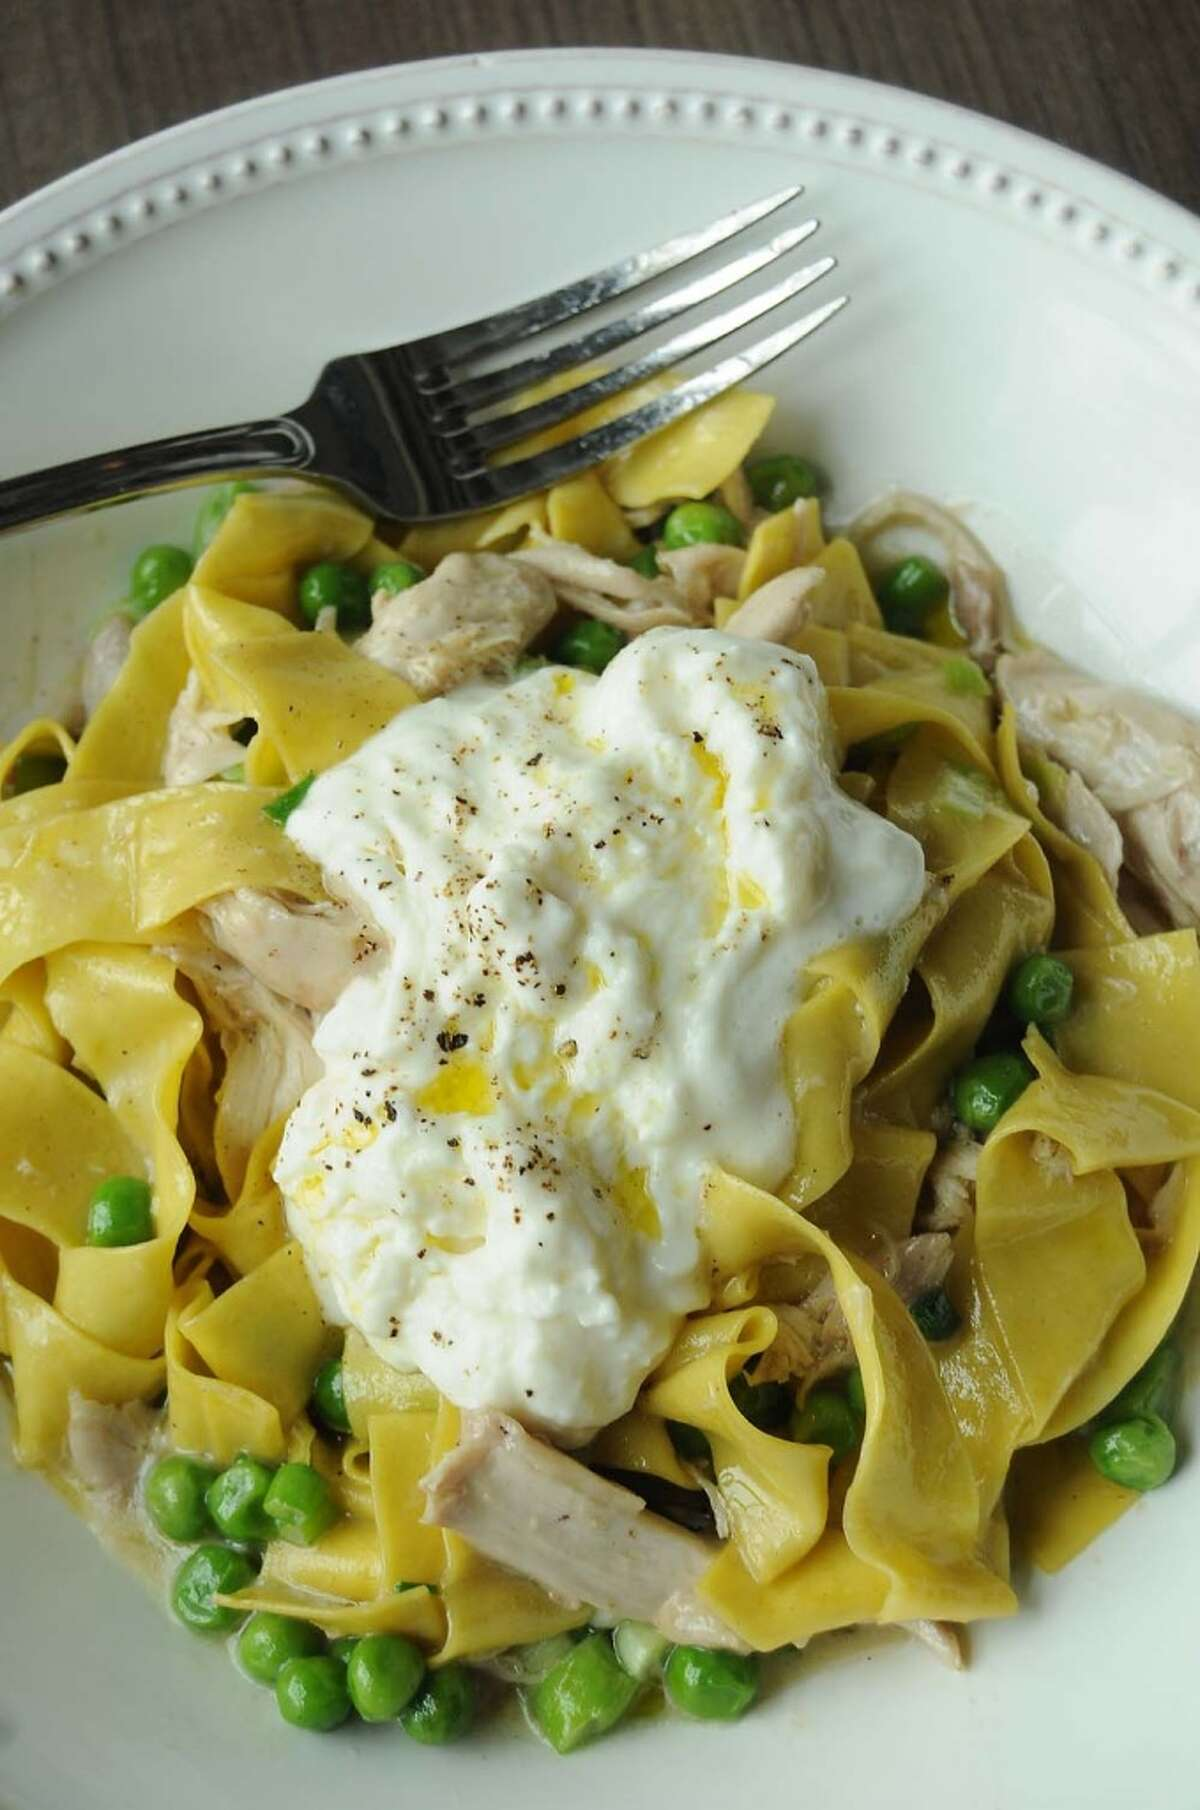 The confit rabbit with homemade papparedelle, fresh peas, scallions and buratta cheese at Weights + Measures.